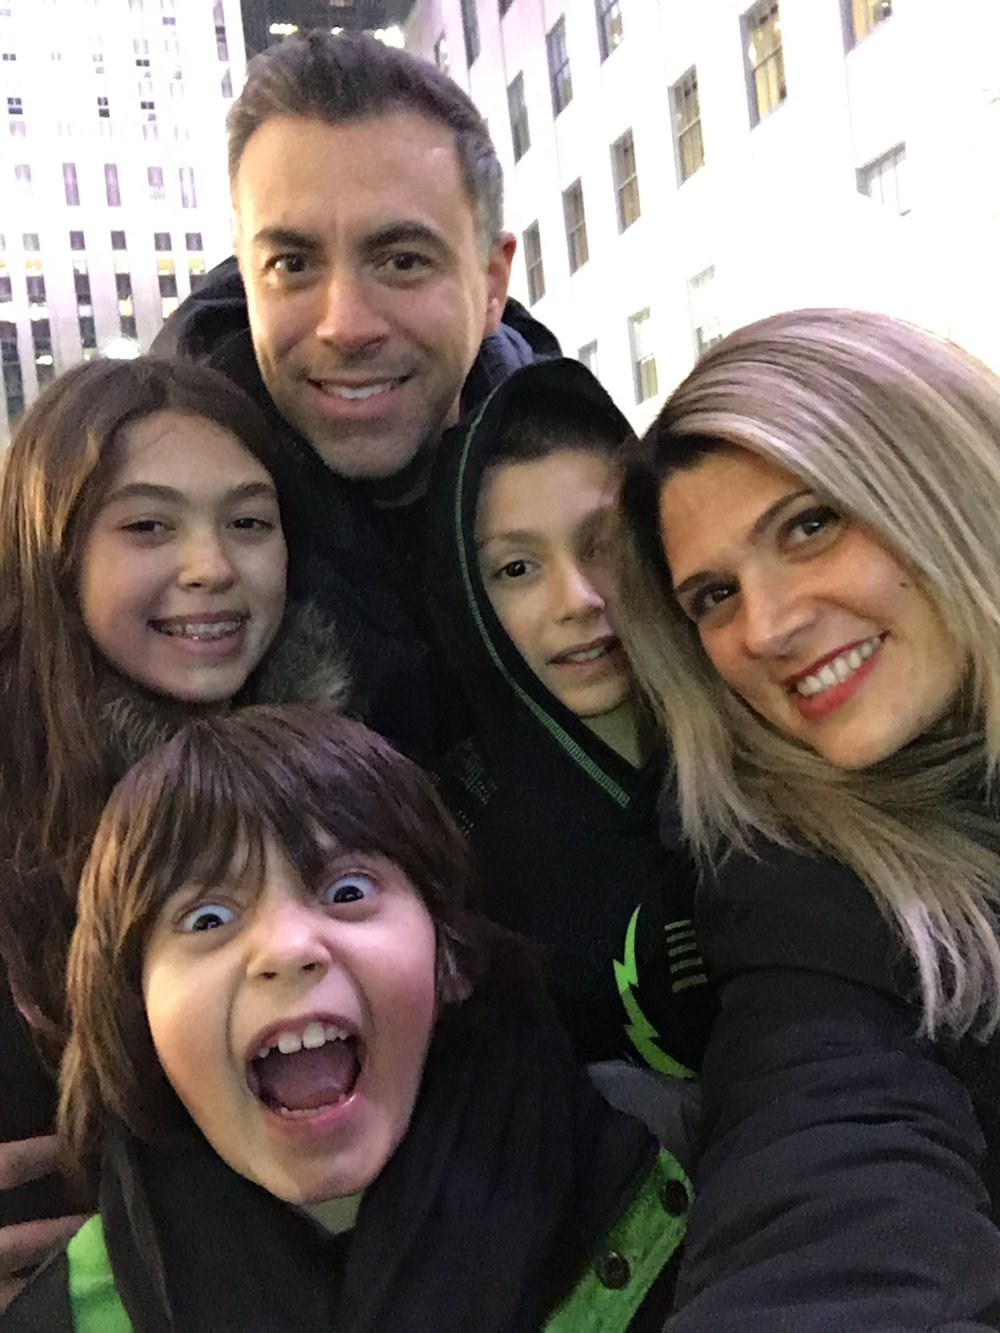 CHRISTMAS IN NYC - Here is our traditional family photo at Rockefeller Center Yup-Jude's facial expression sums it up for how I feel every December 1st.